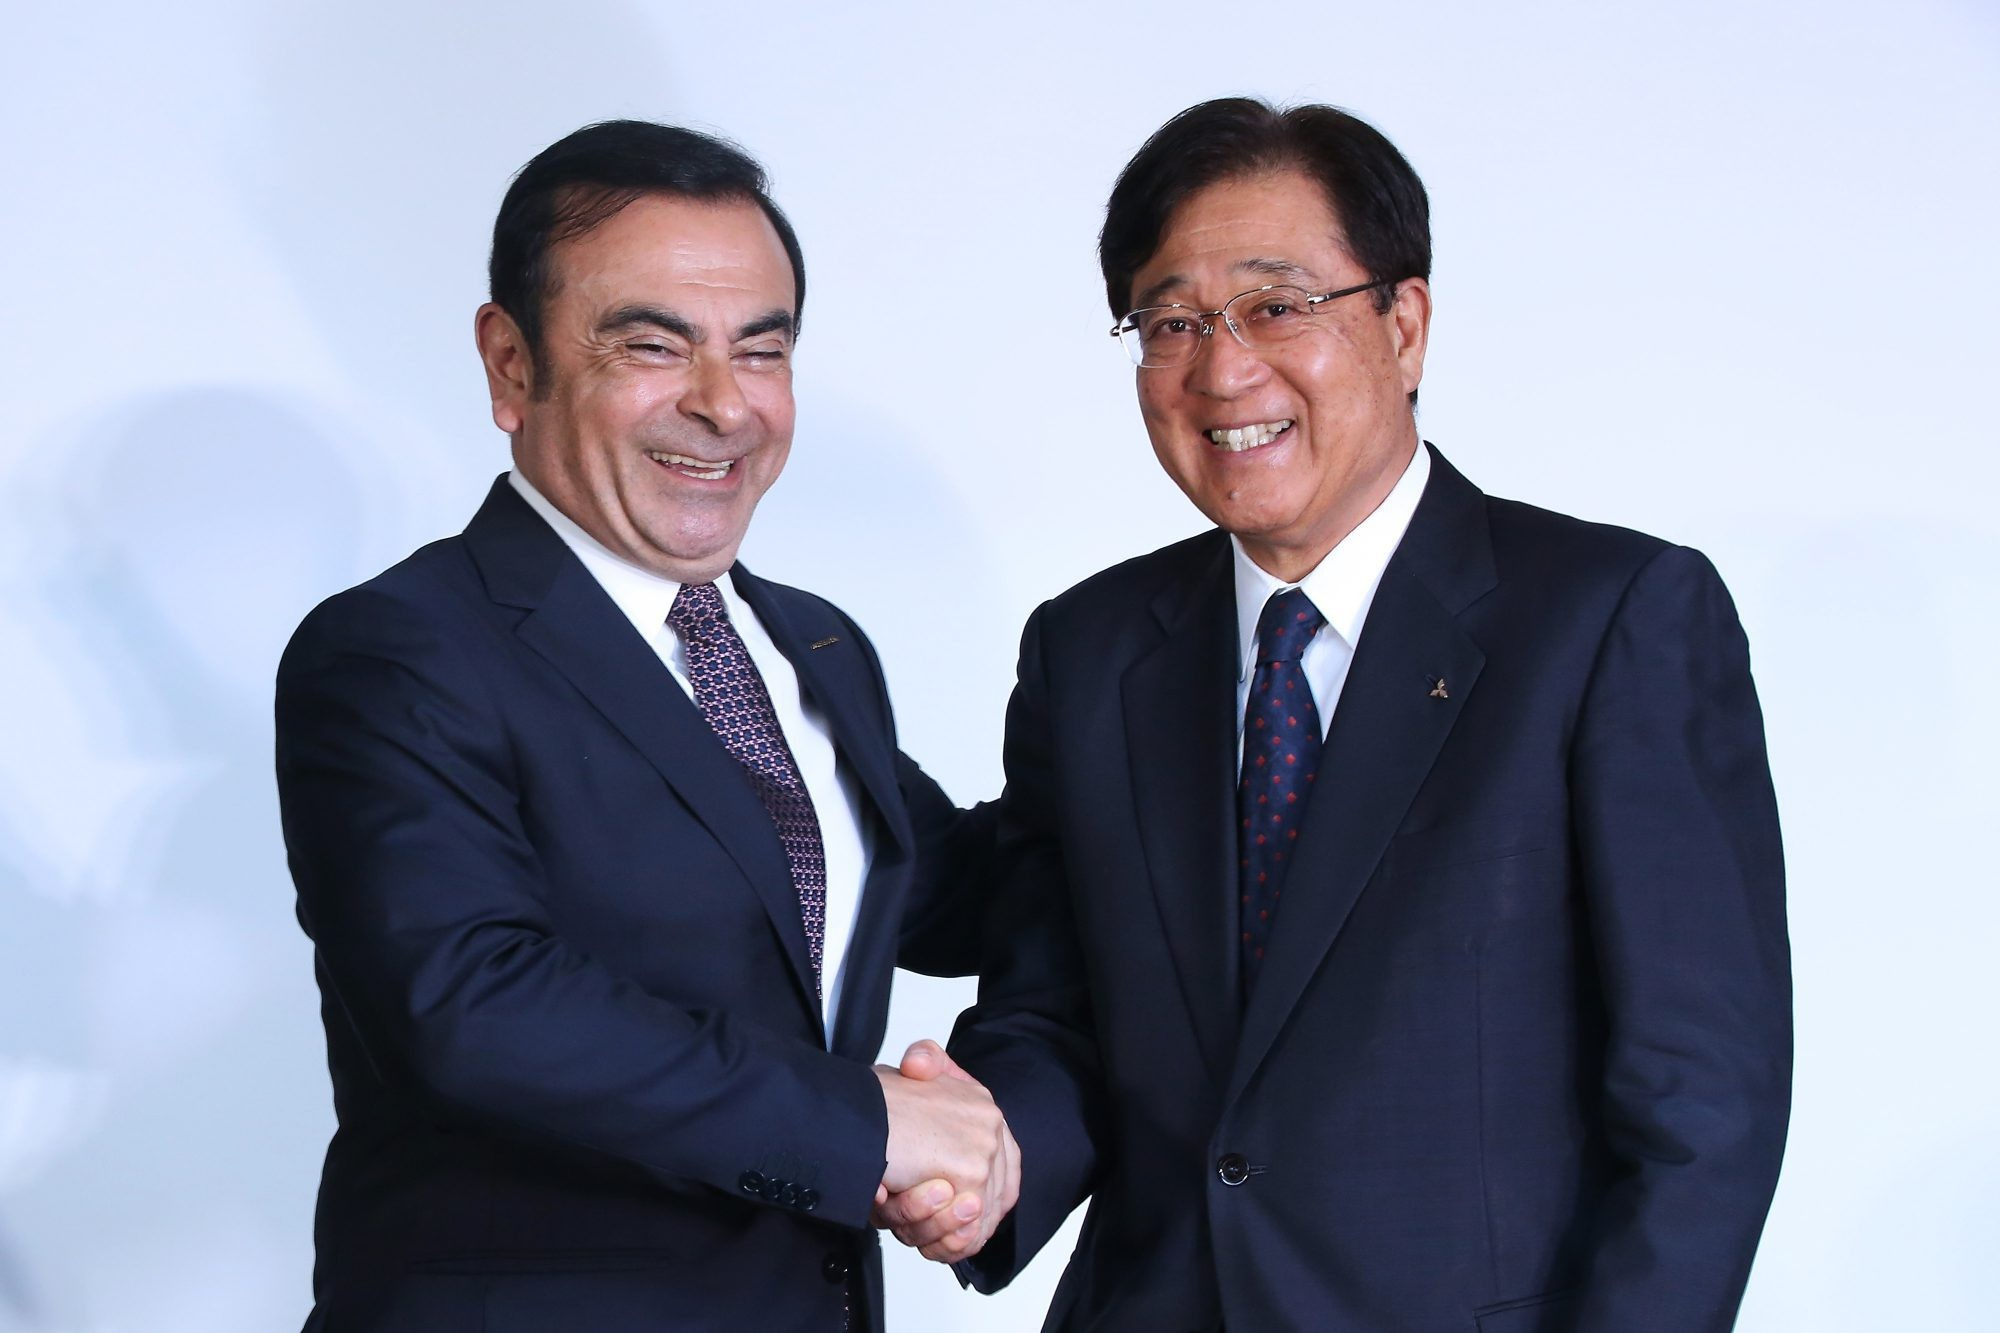 Nissan Motor CEO Carlos Ghosn And Mitsubishi Motors Chairman And CEO Osamu Masuko Attend News Conference